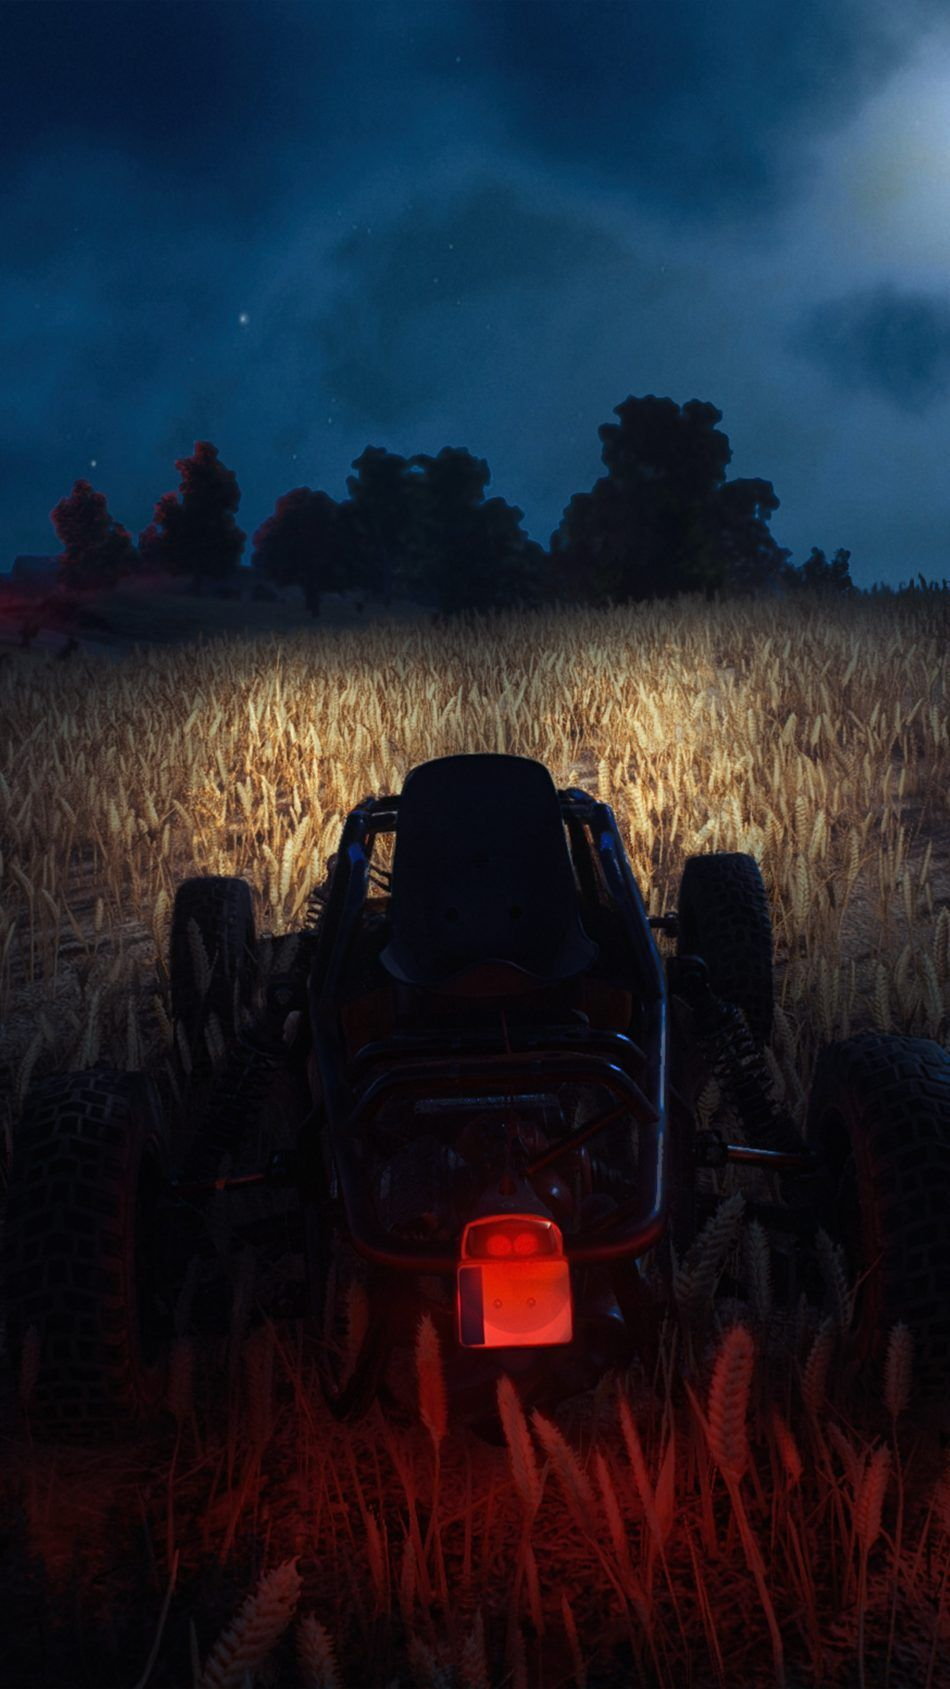 Download PUBG Buggy Night Mode Driving Free Pure 4K Ultra ...